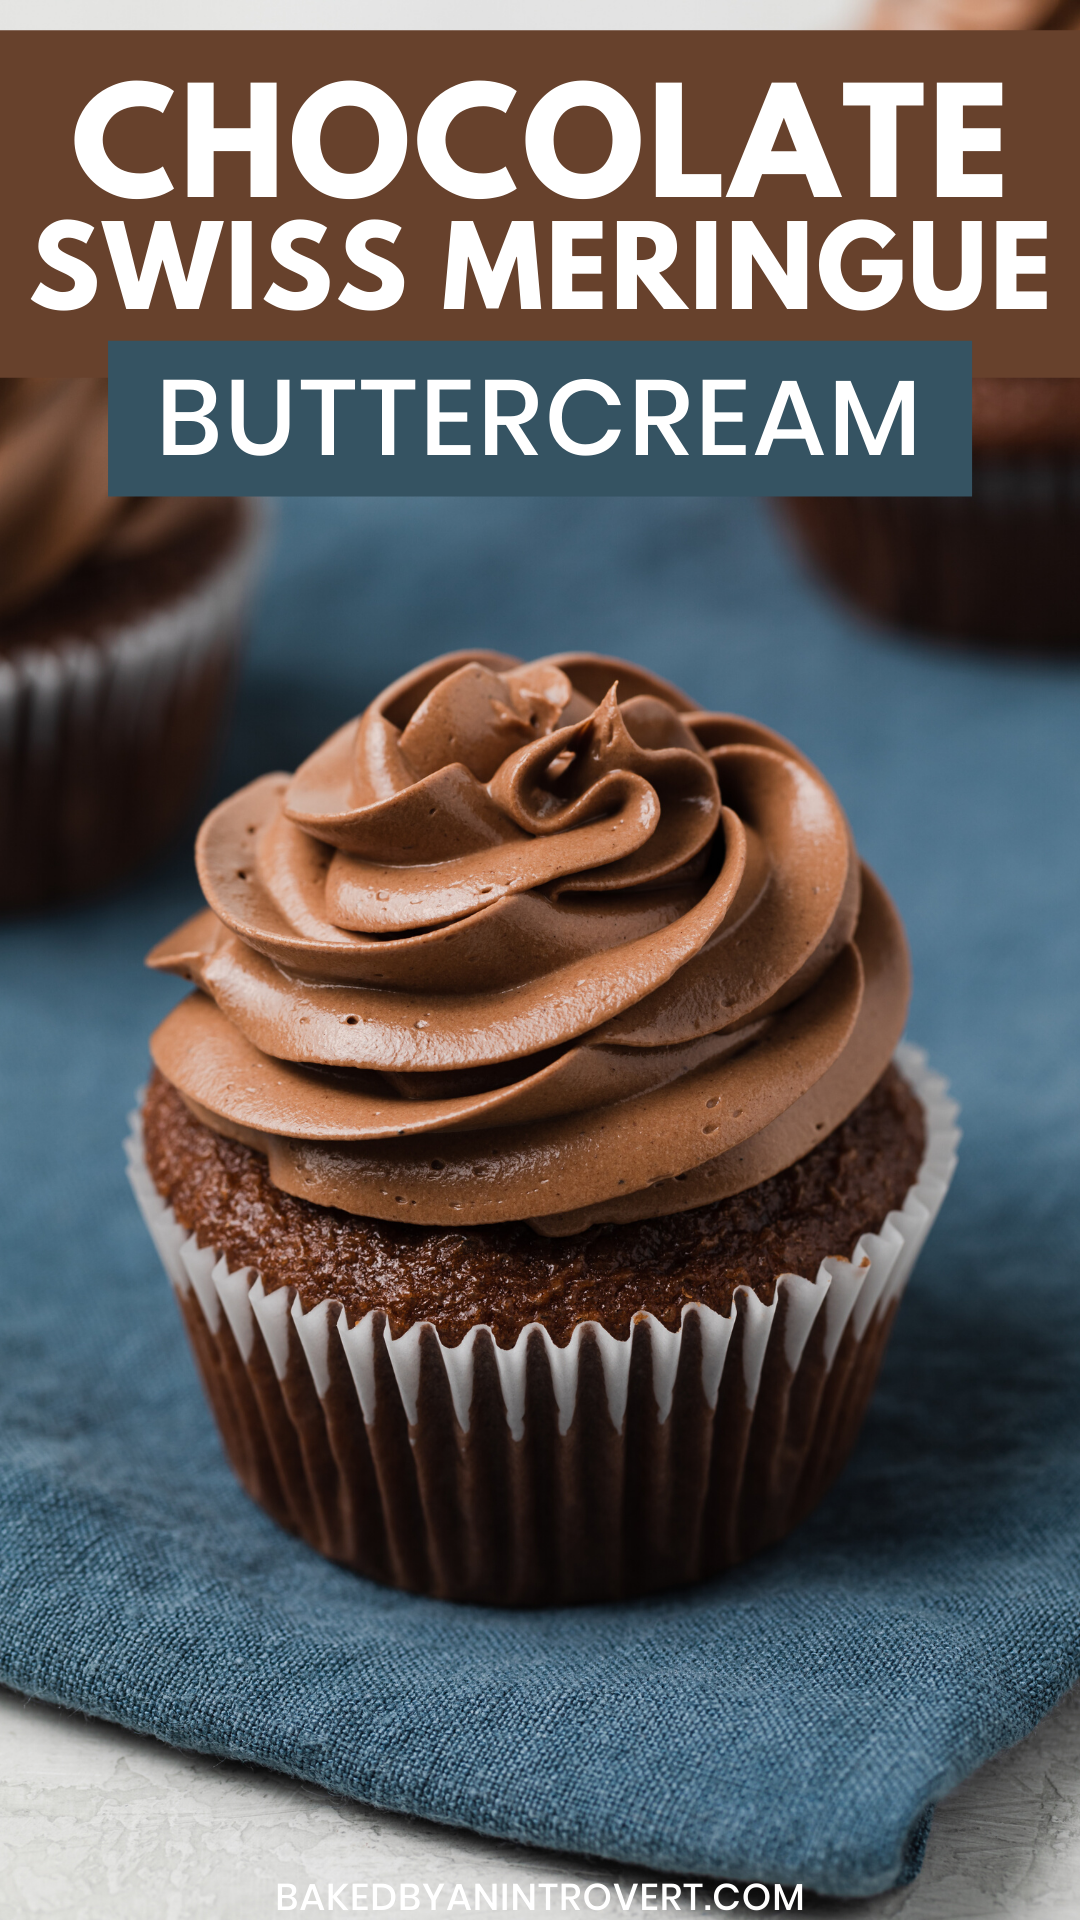 Chocolate Swiss Meringue Buttercream